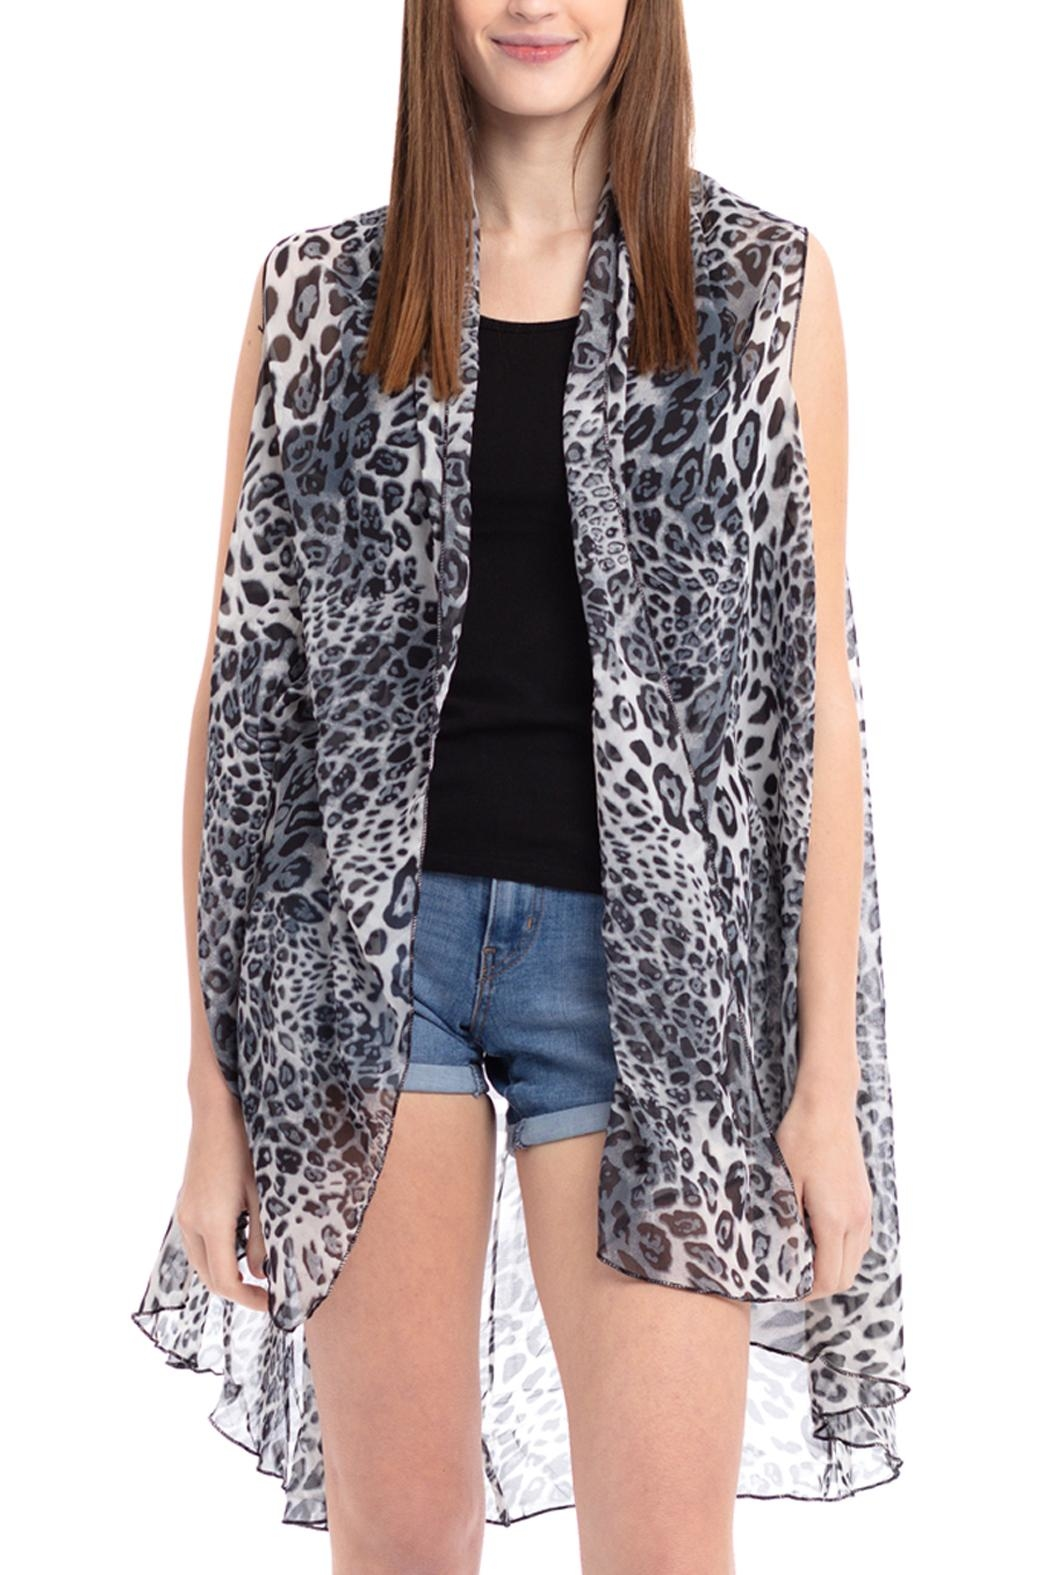 Riah Fashion Mixed Animal Print-Vest - Front Cropped Image